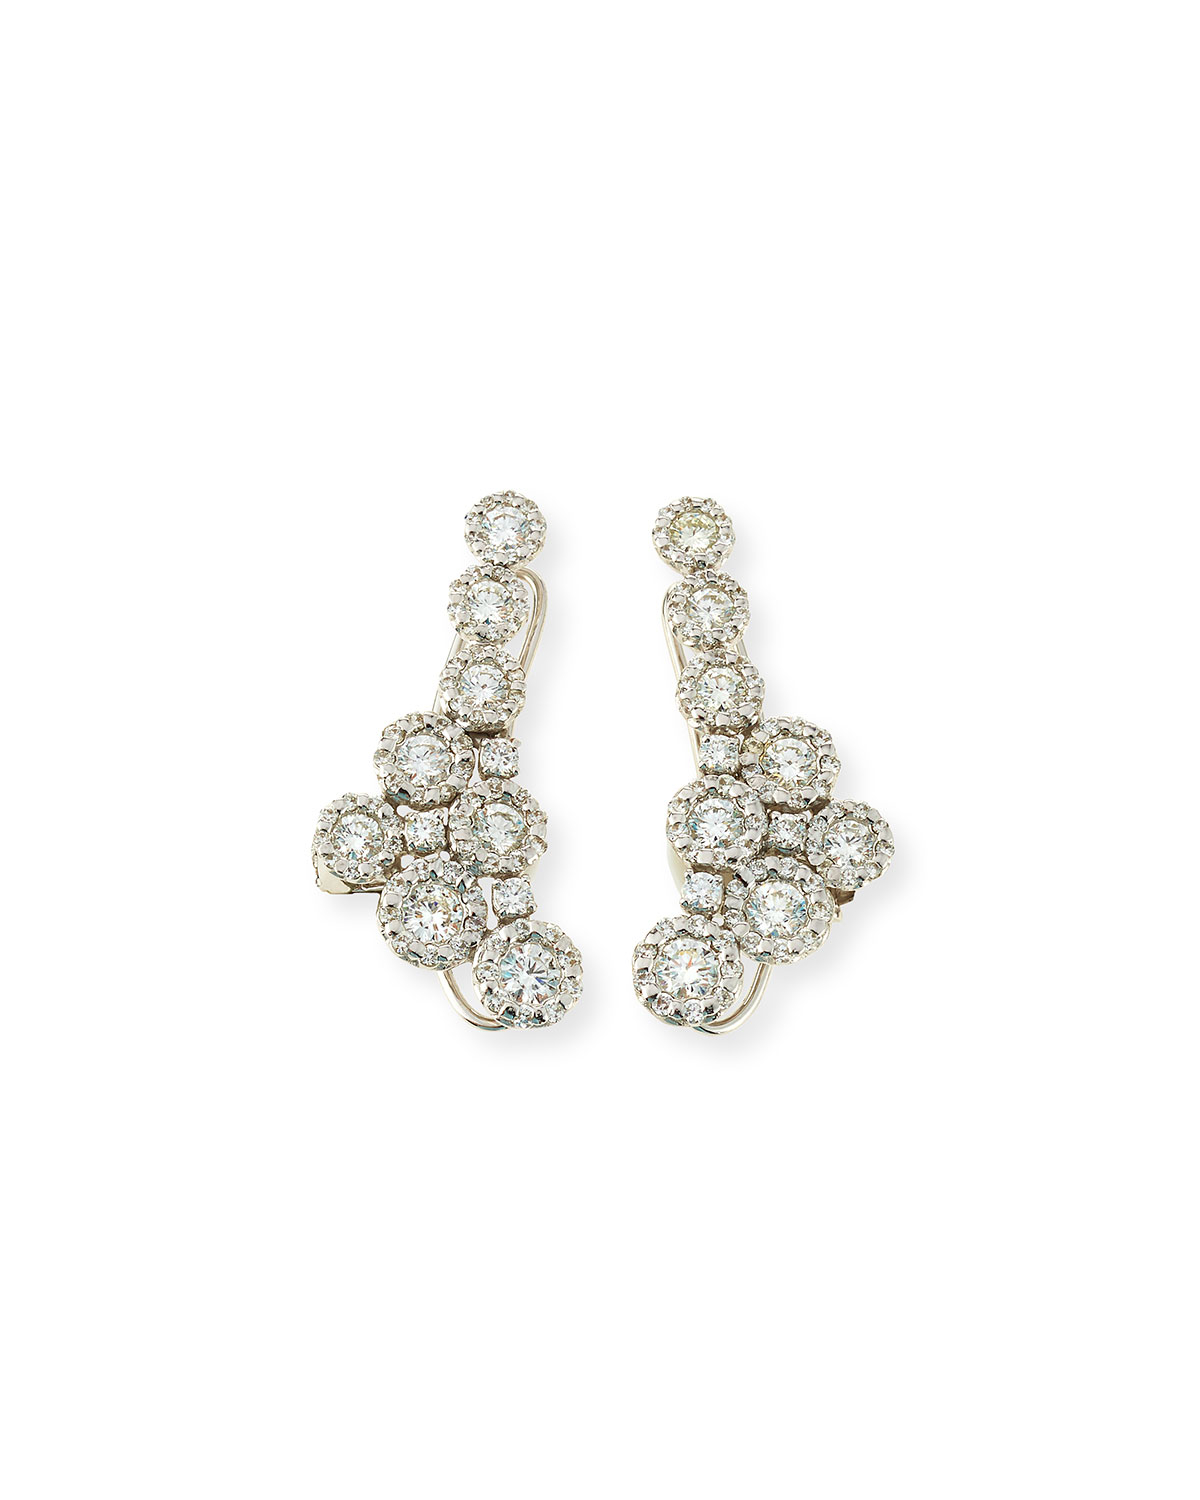 Yeprem 18kt gold diamond cluster earrings - Metallic WfOzn1yVmN